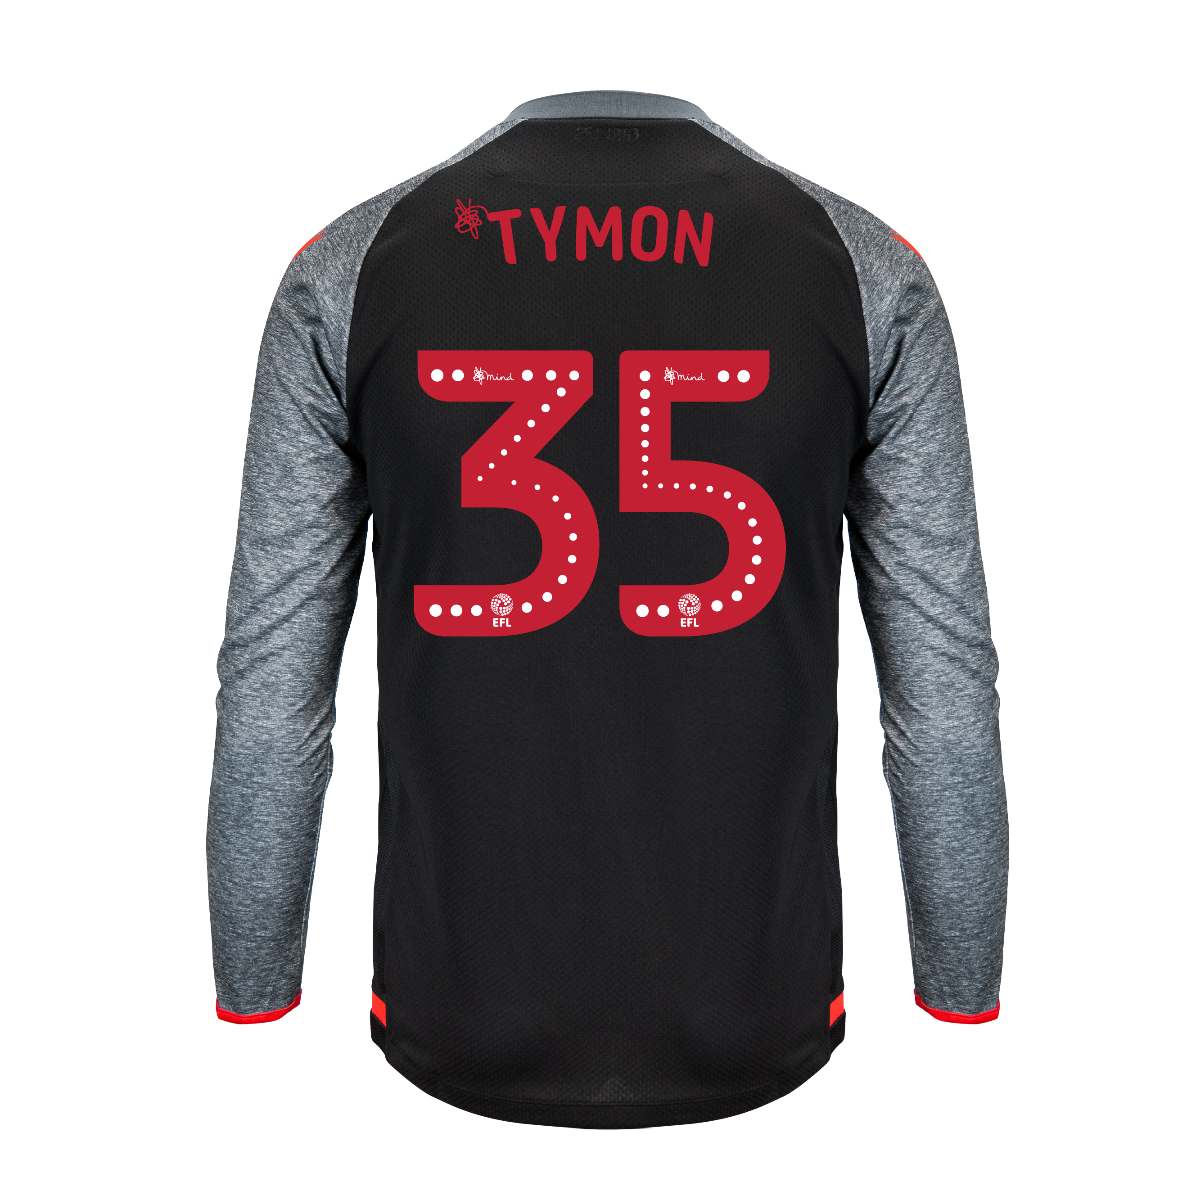 2019/20 Adult Away LS Shirt - Tymon